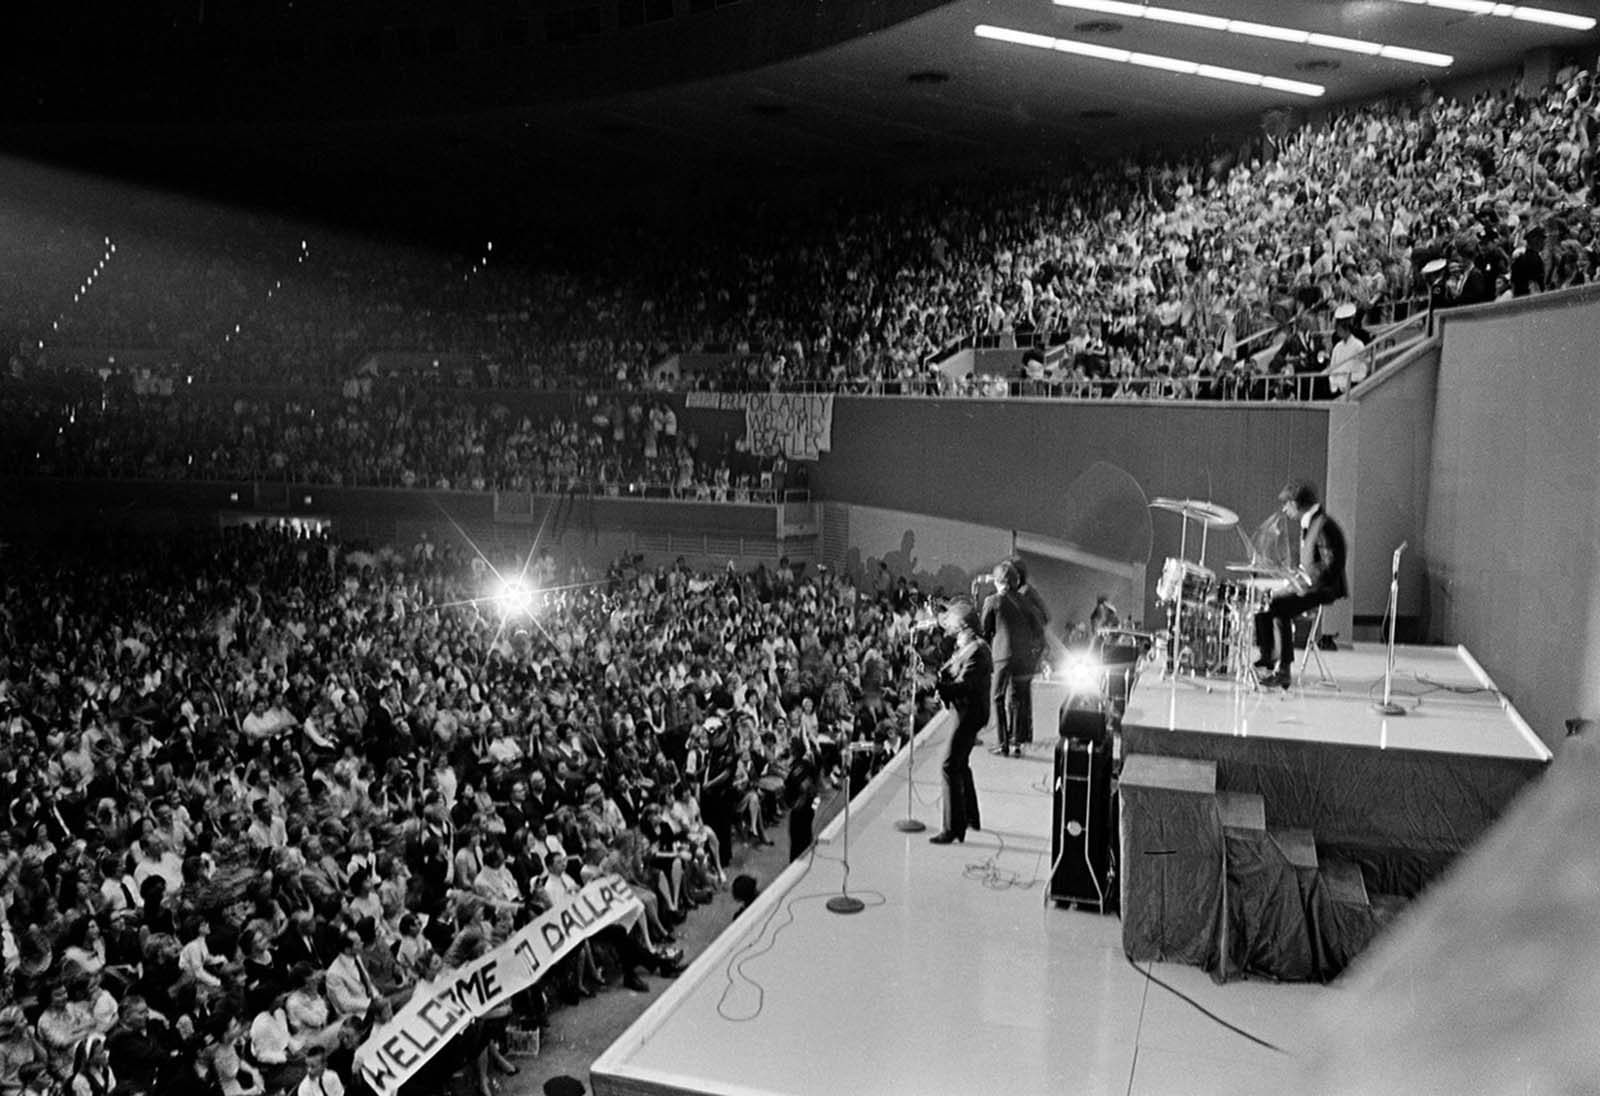 The British rock and roll band the Beatles perform at the Memorial Coliseum in Dallas, Texas, on September 18, 1964 on their second U.S. tour.